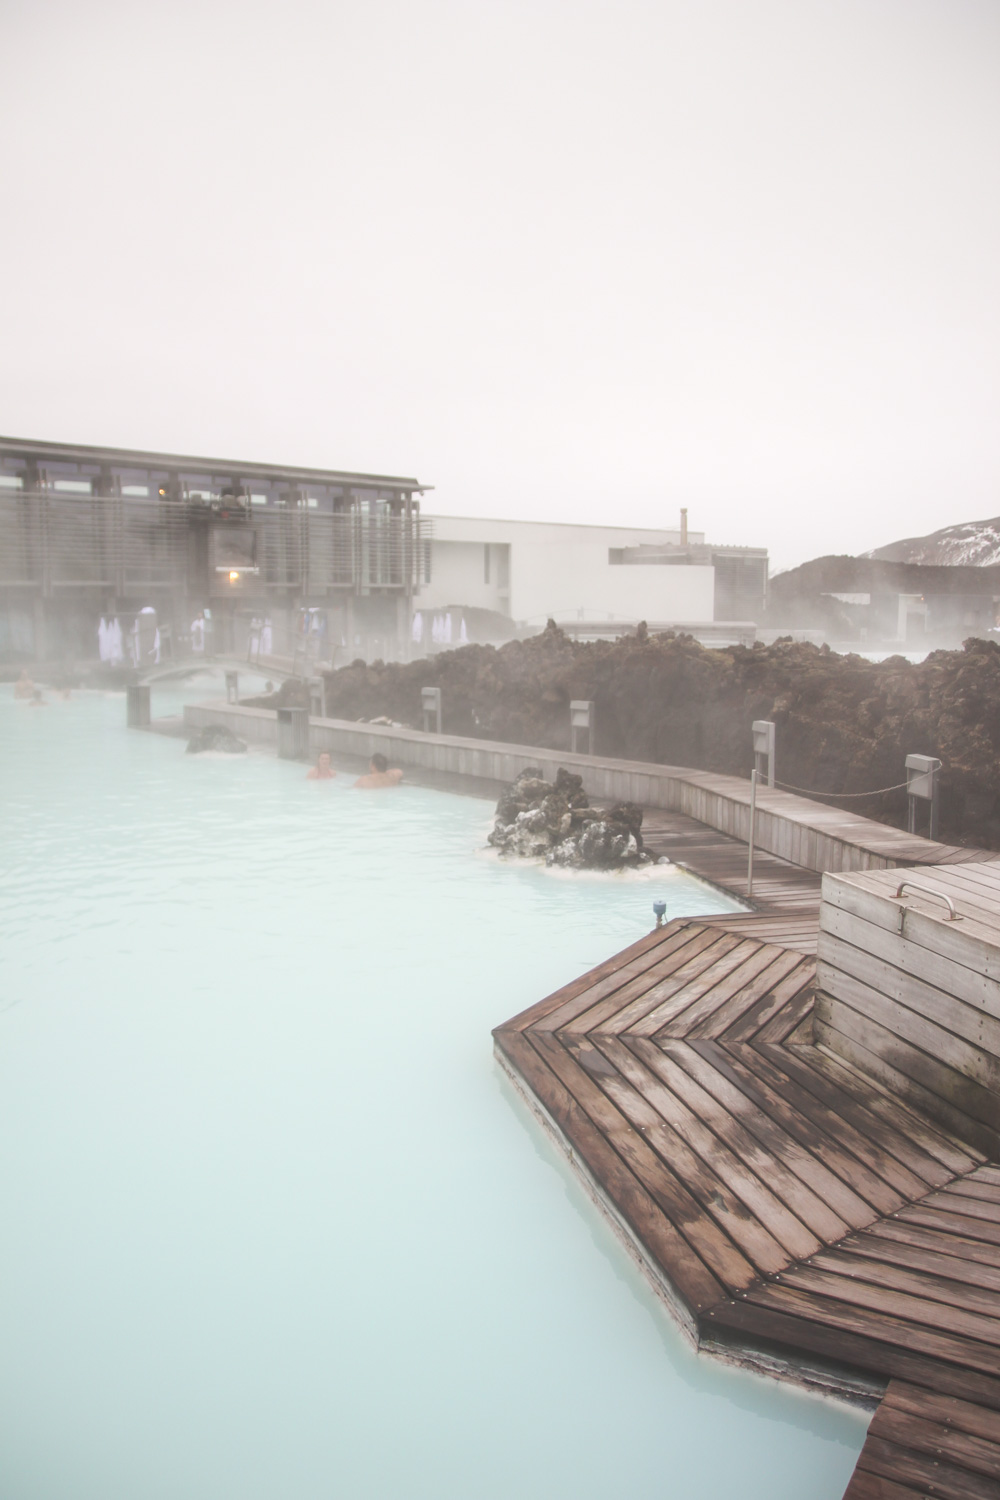 How to Spend Four Days in Iceland